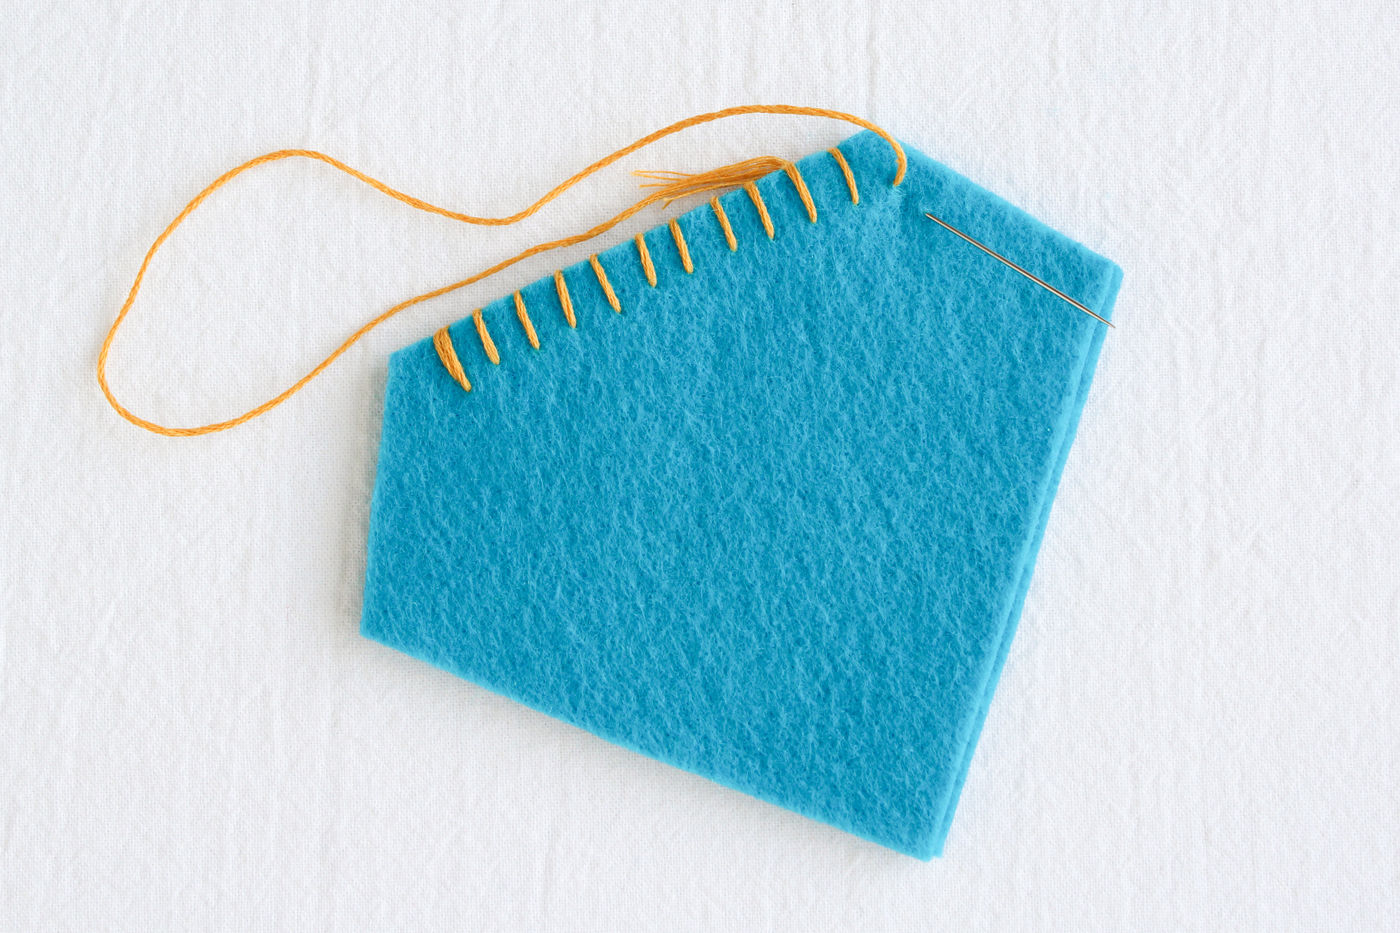 Practicing Your Stitching